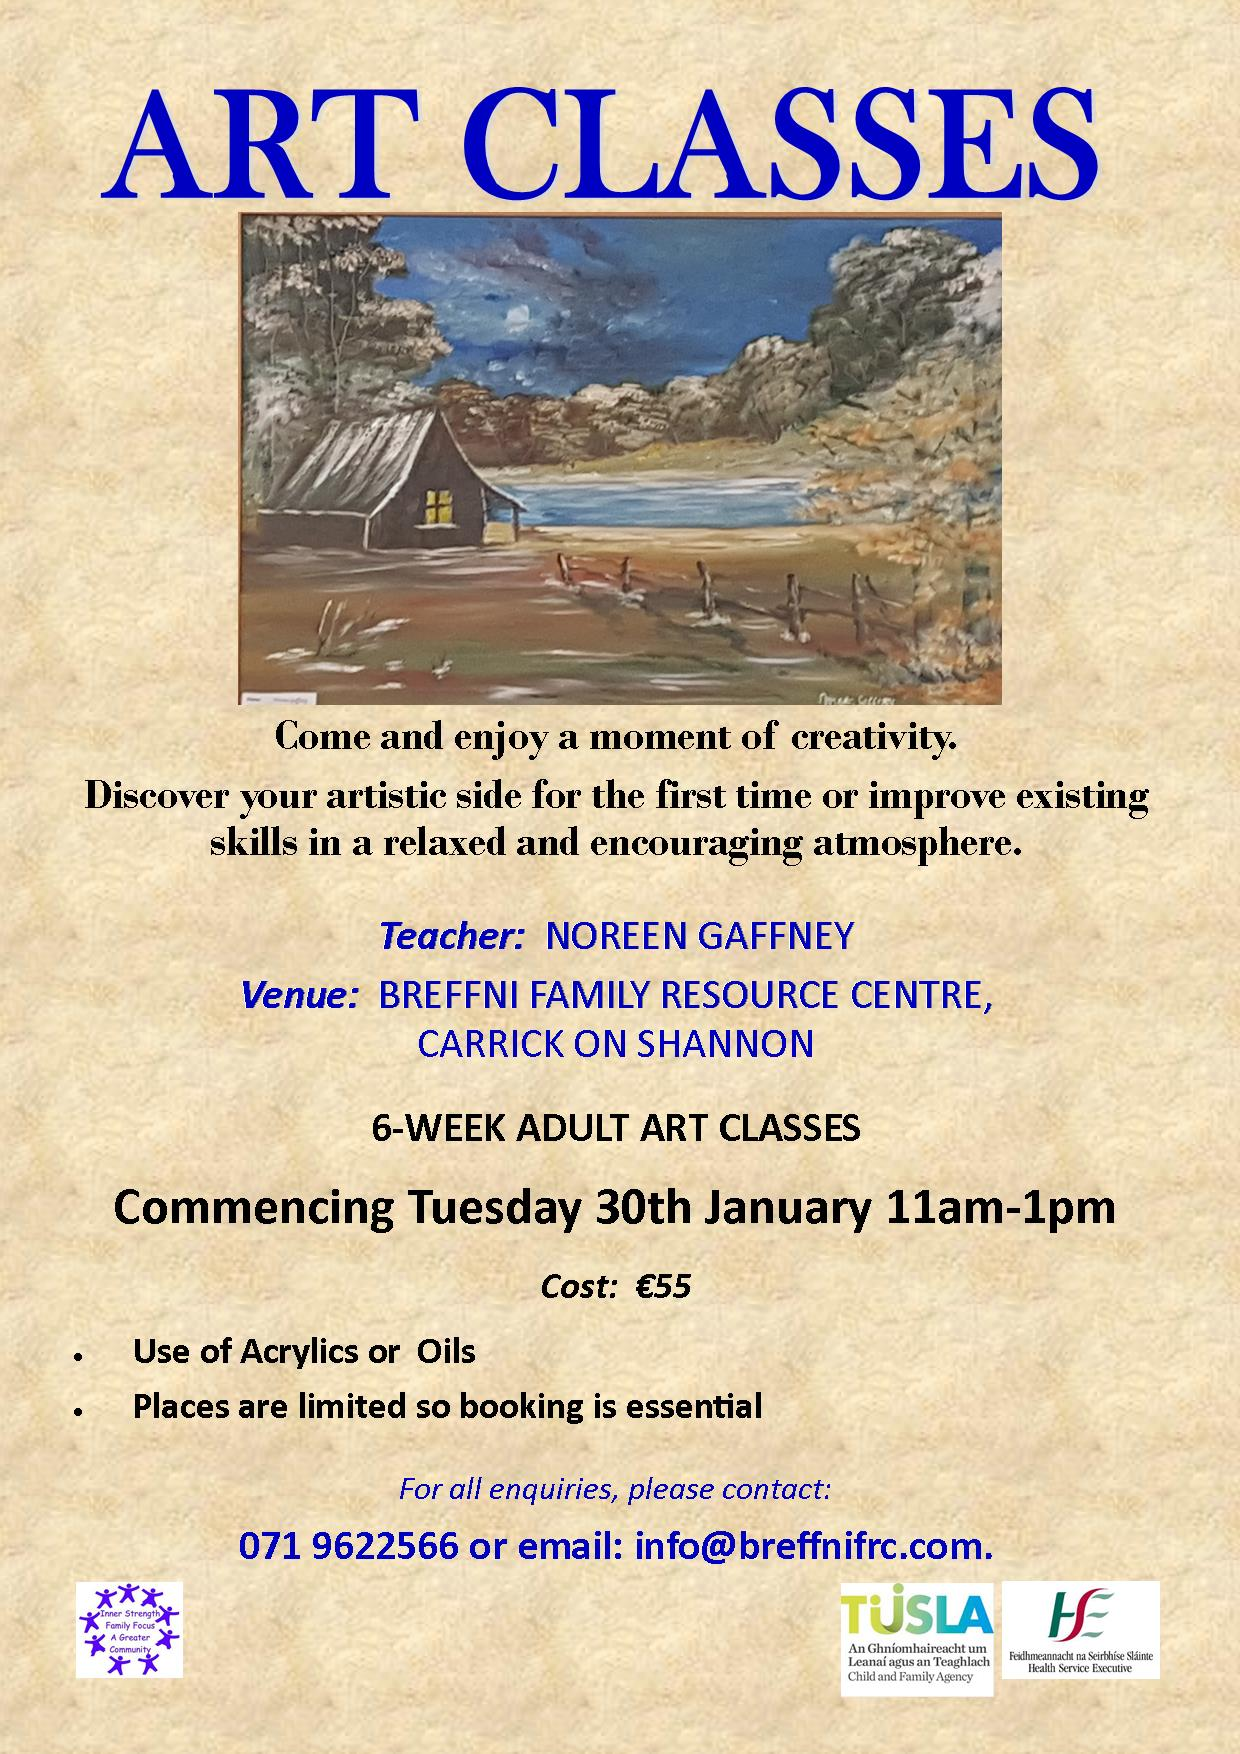 MyCarrick Event - Breffni Family Resource Centre - Art with Noreen